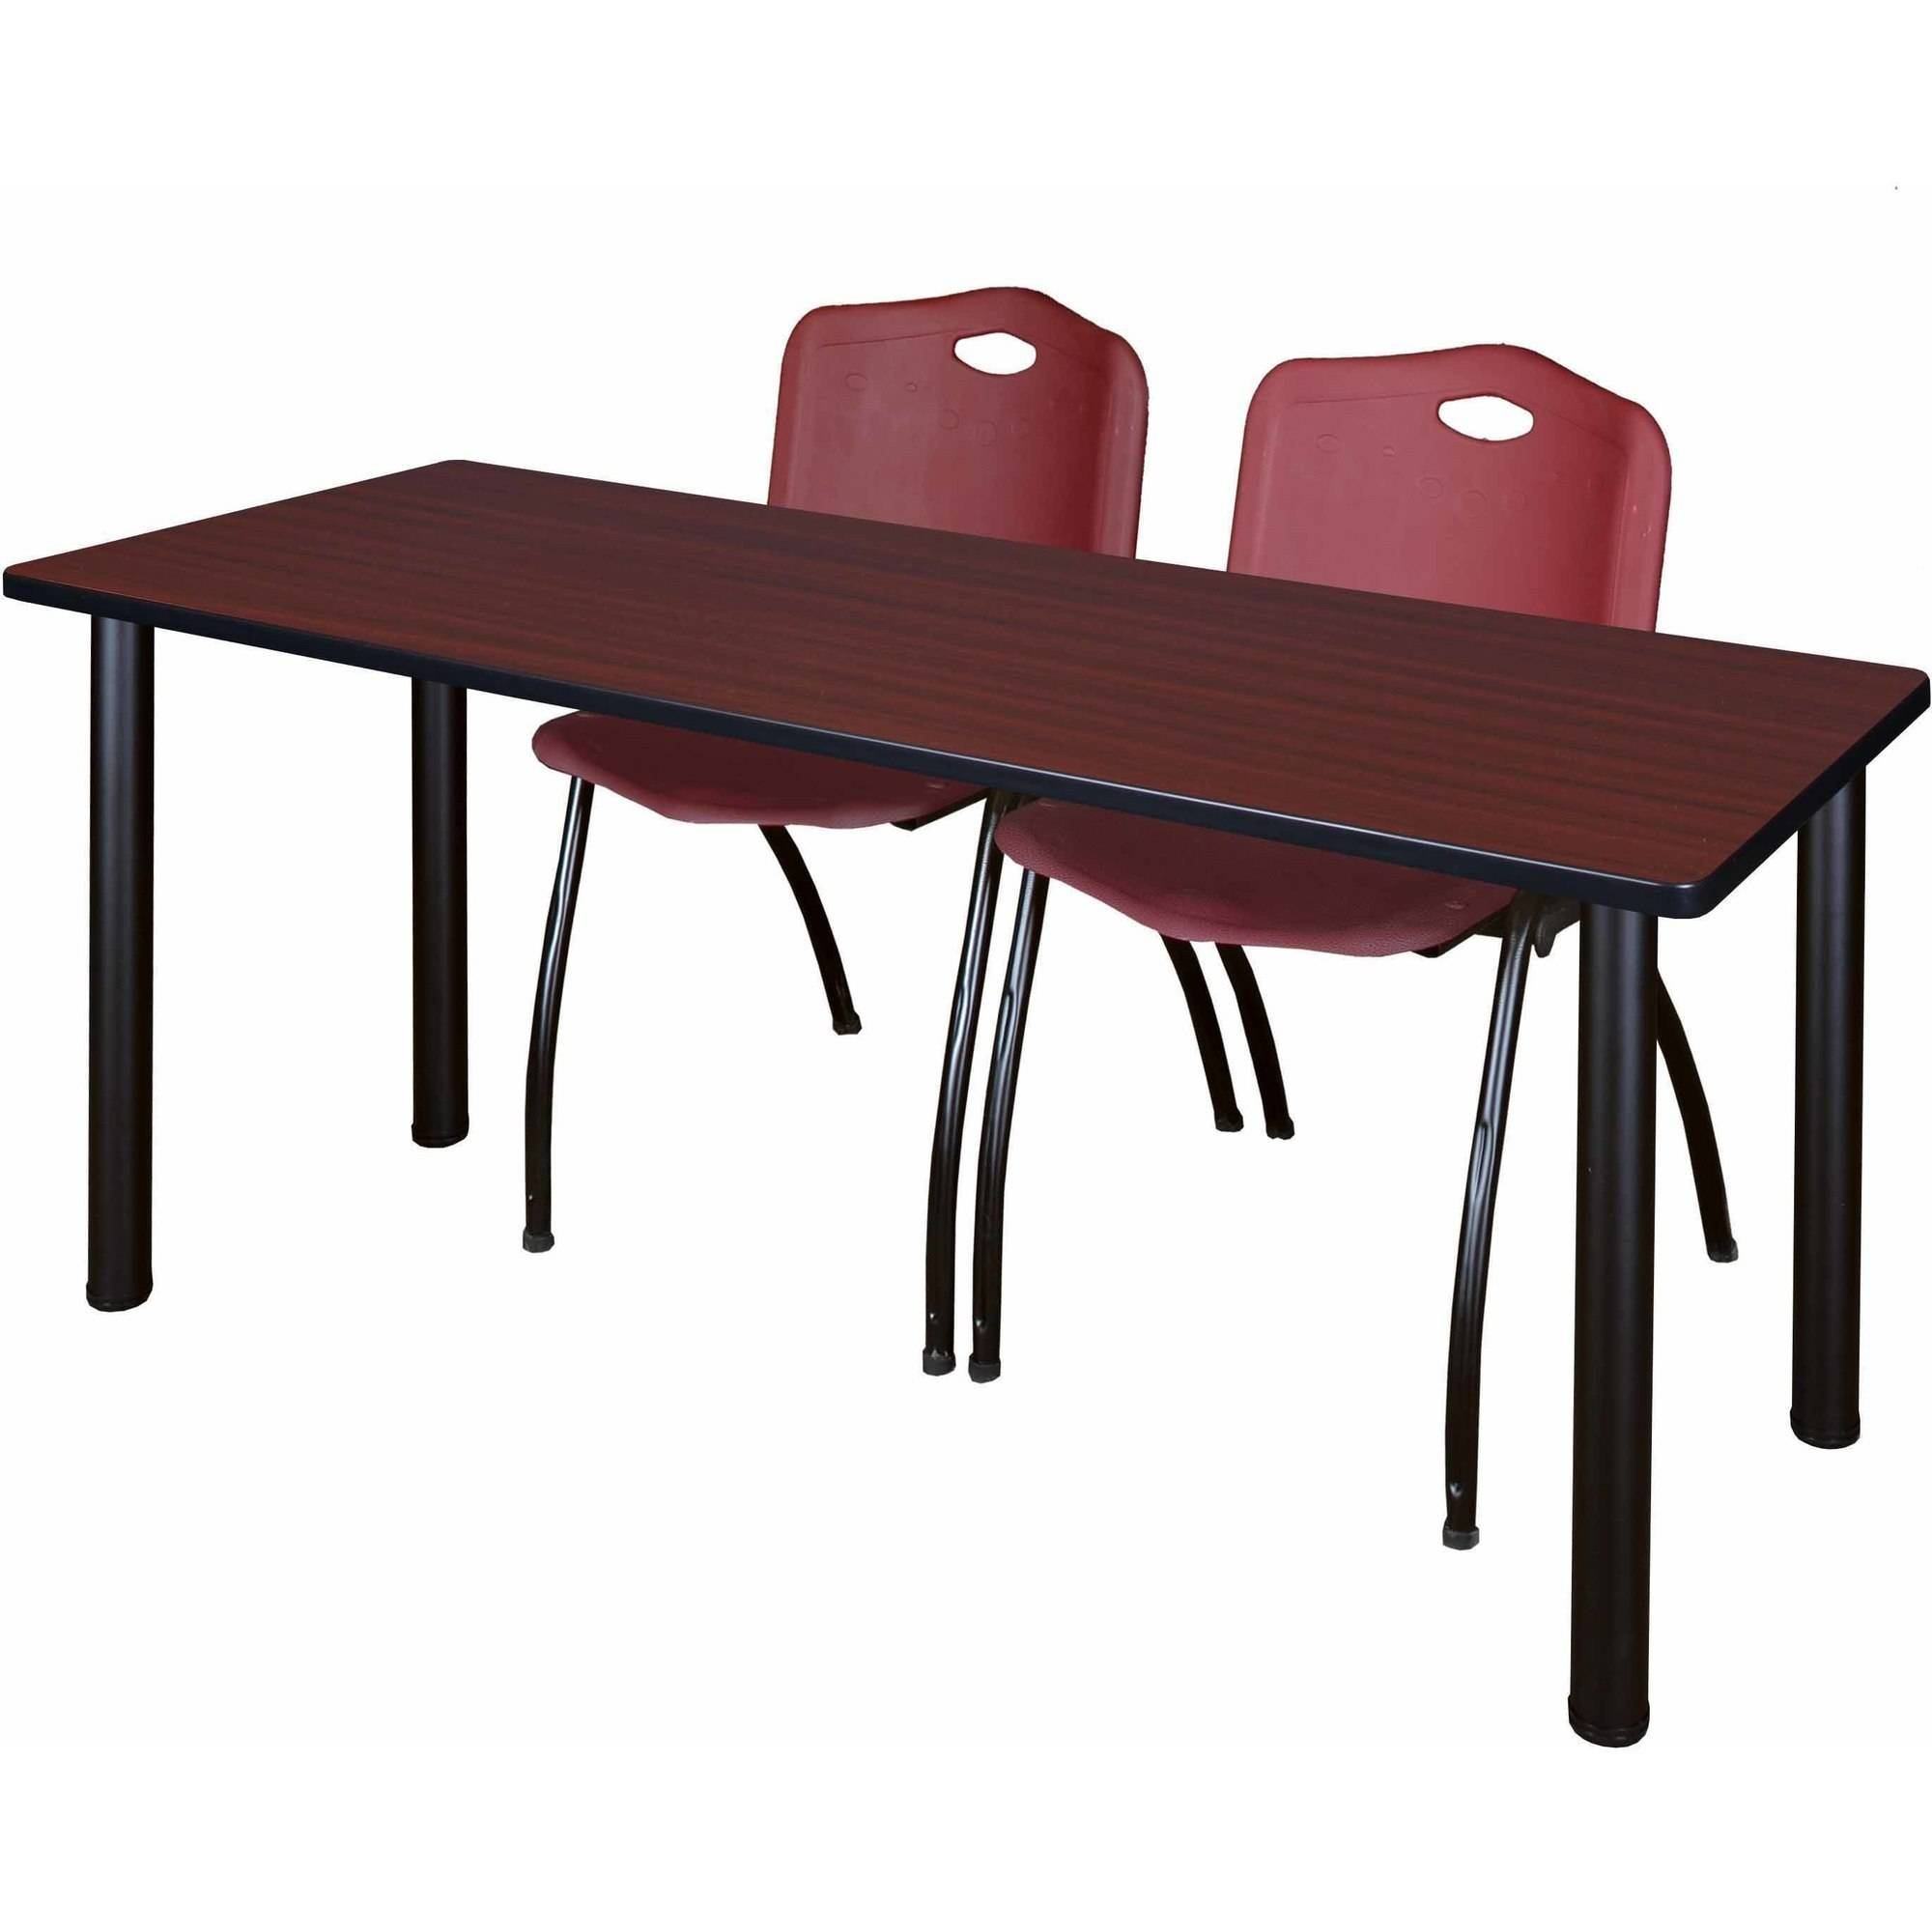 "Regency Kee 60"" x 24"" Training Table, Mahogany/Black and 2 'M' Stack Chairs, Multiple Colors"